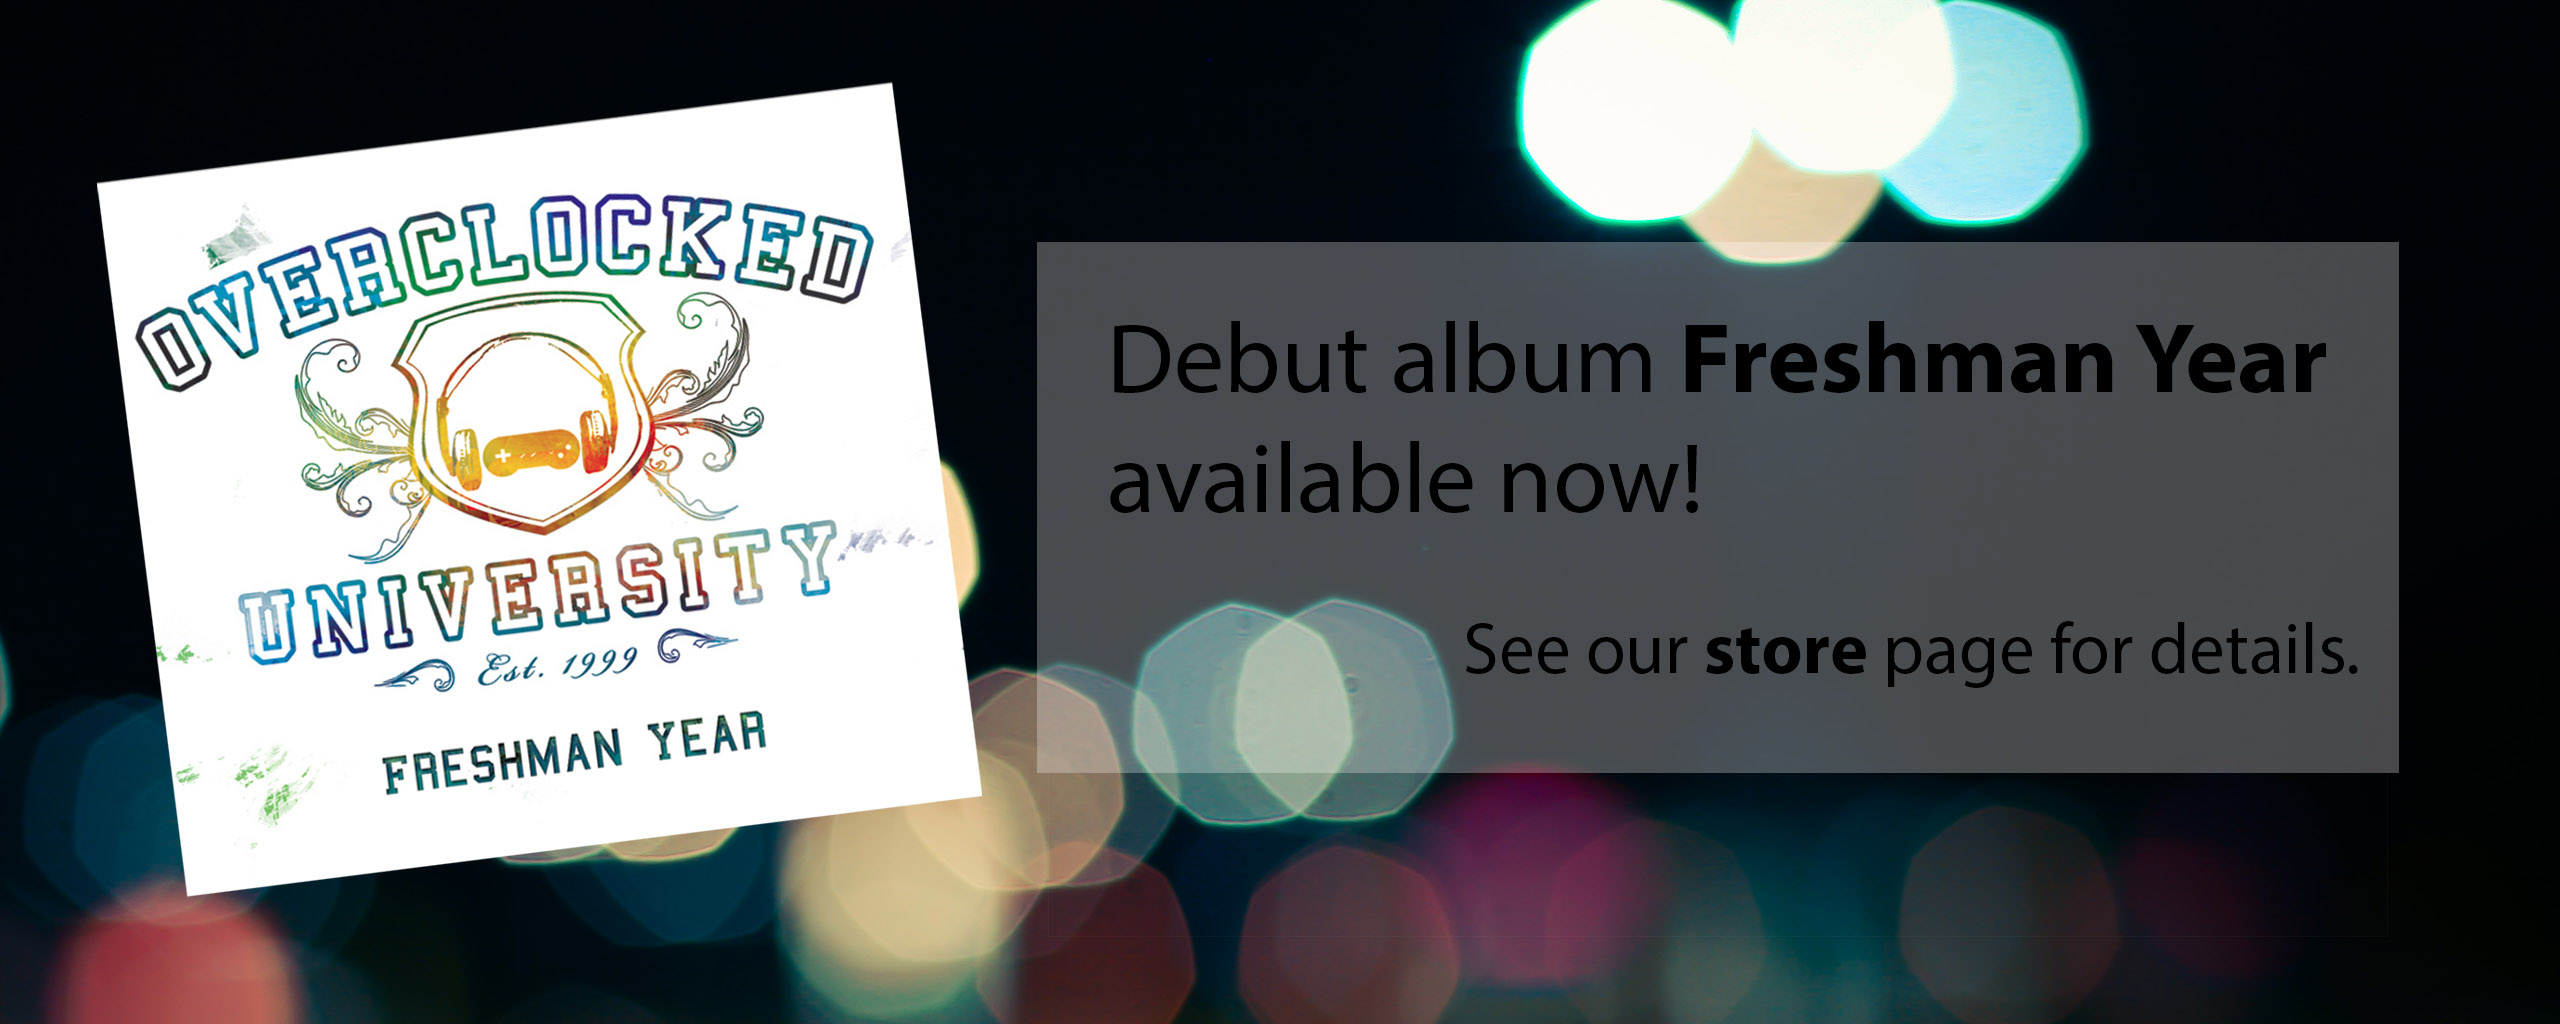 Debut album Freshman Year available now!